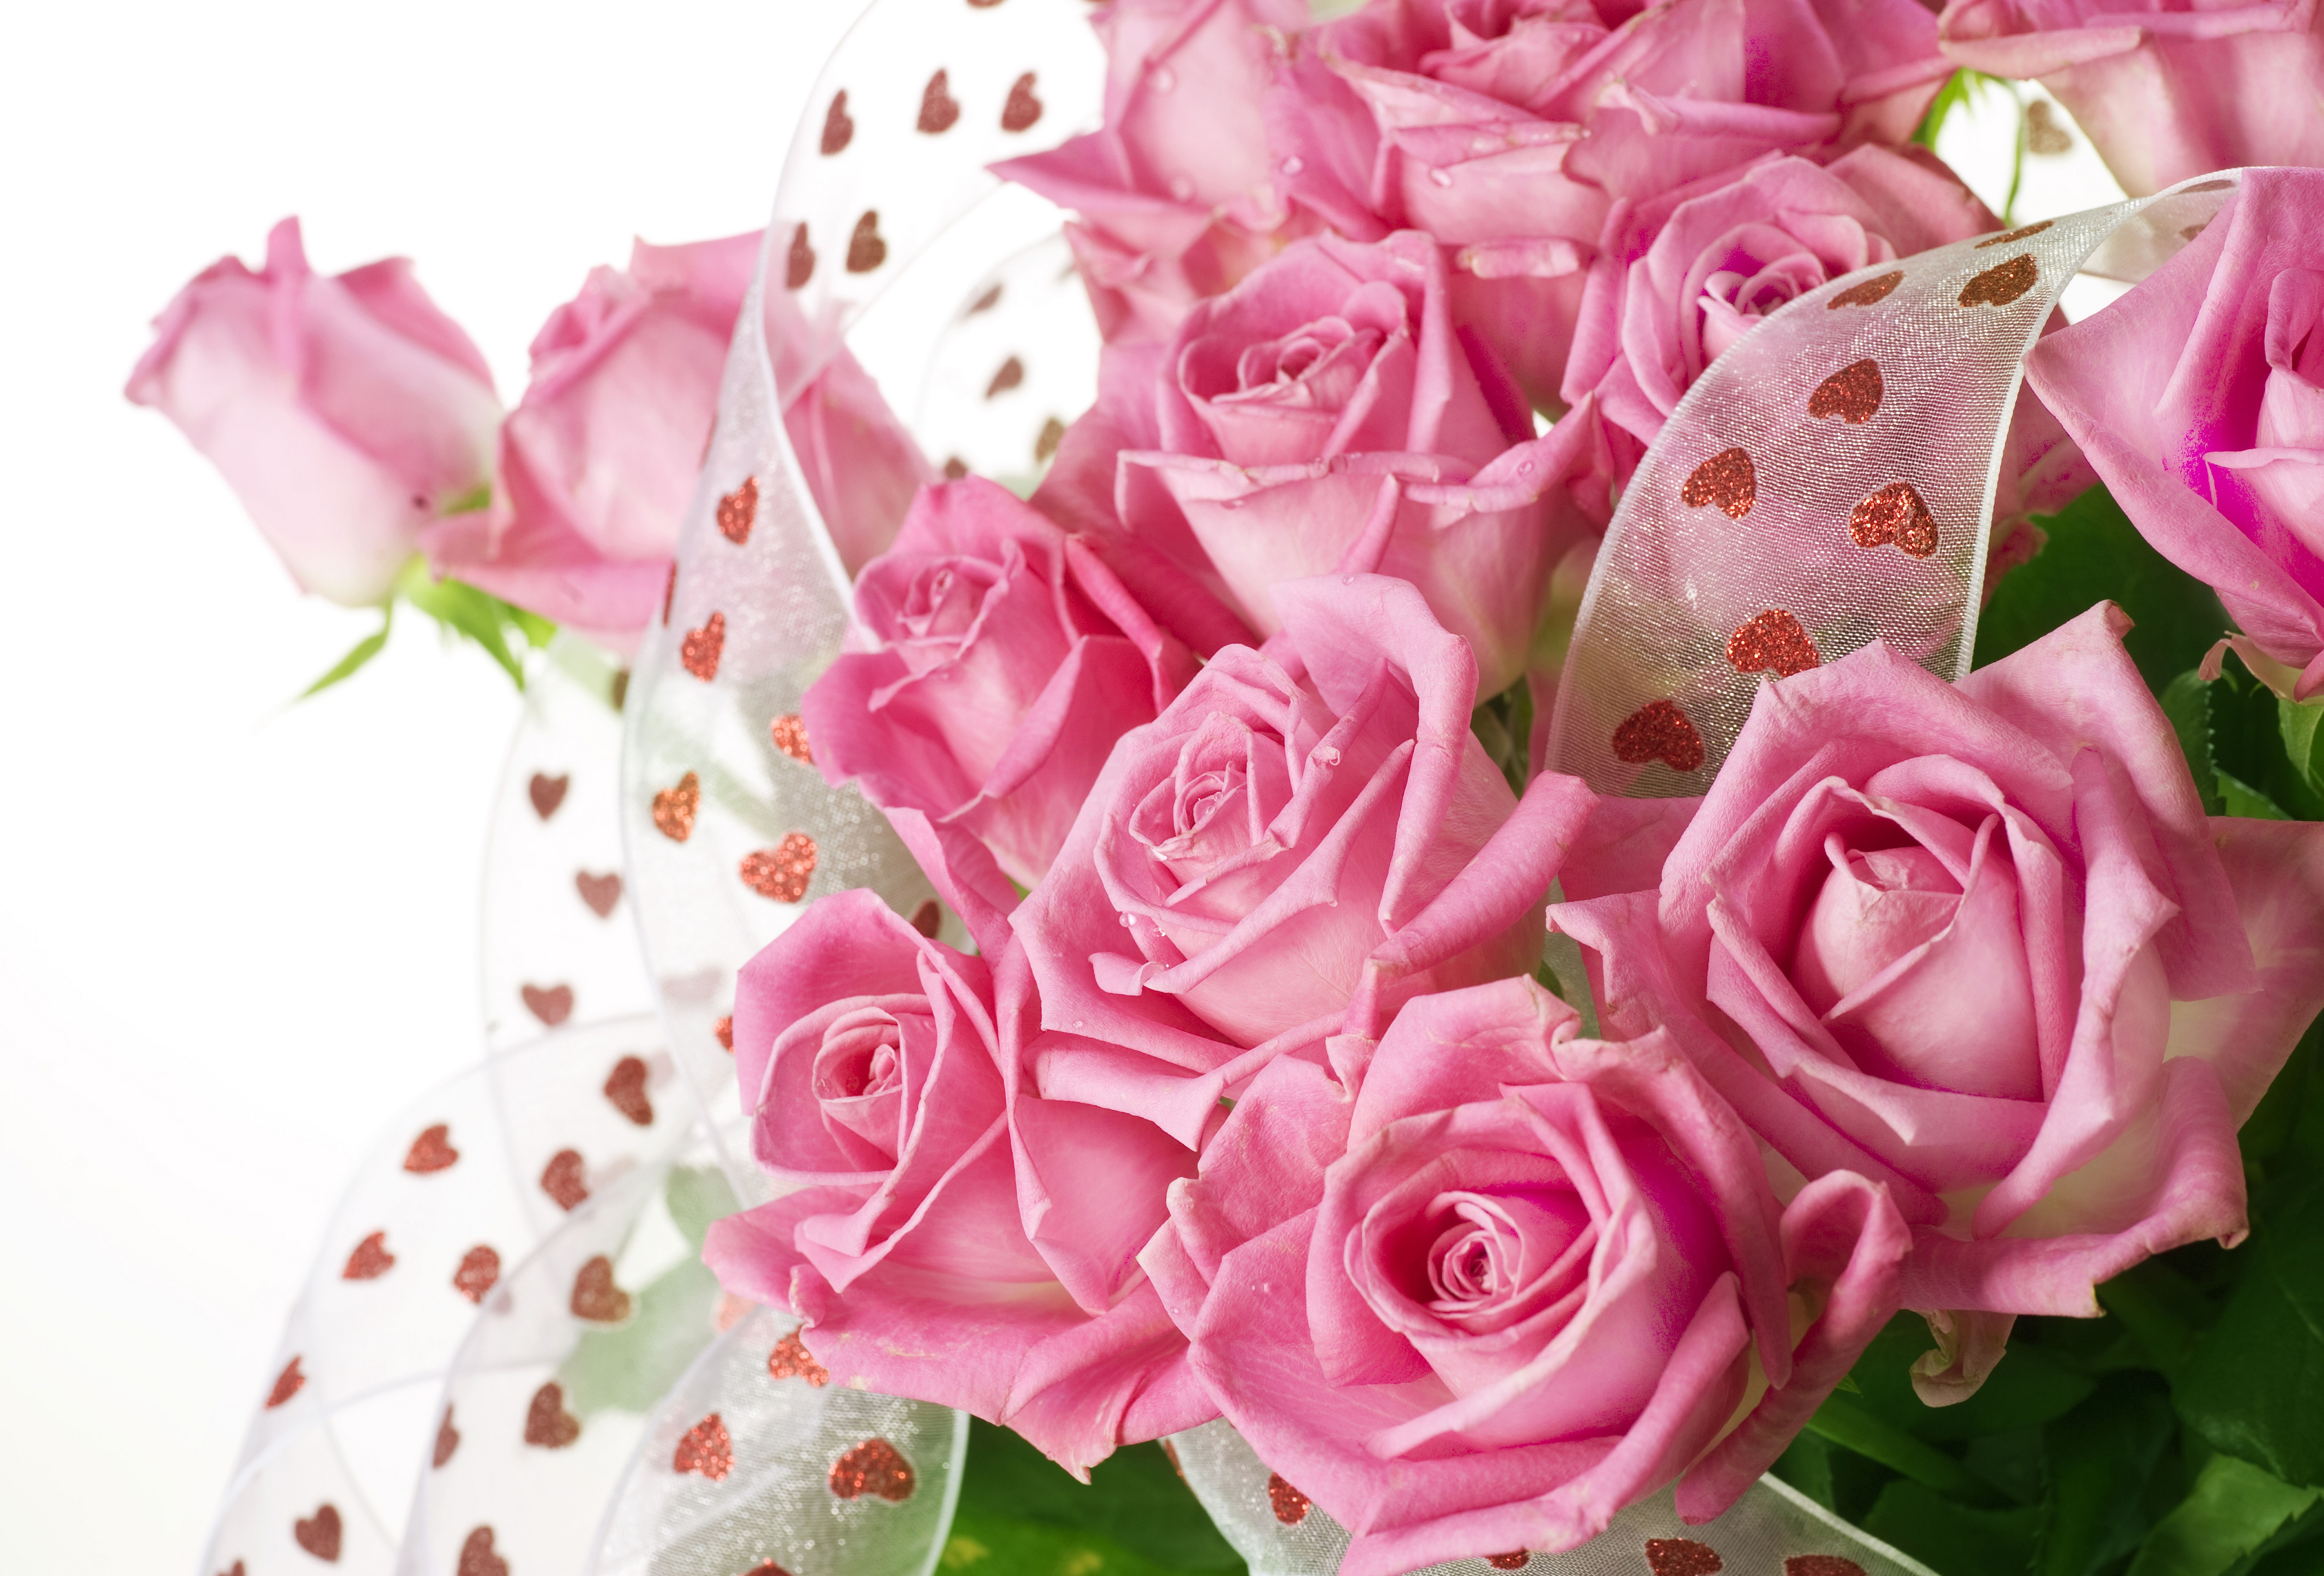 pictures of roses - HD